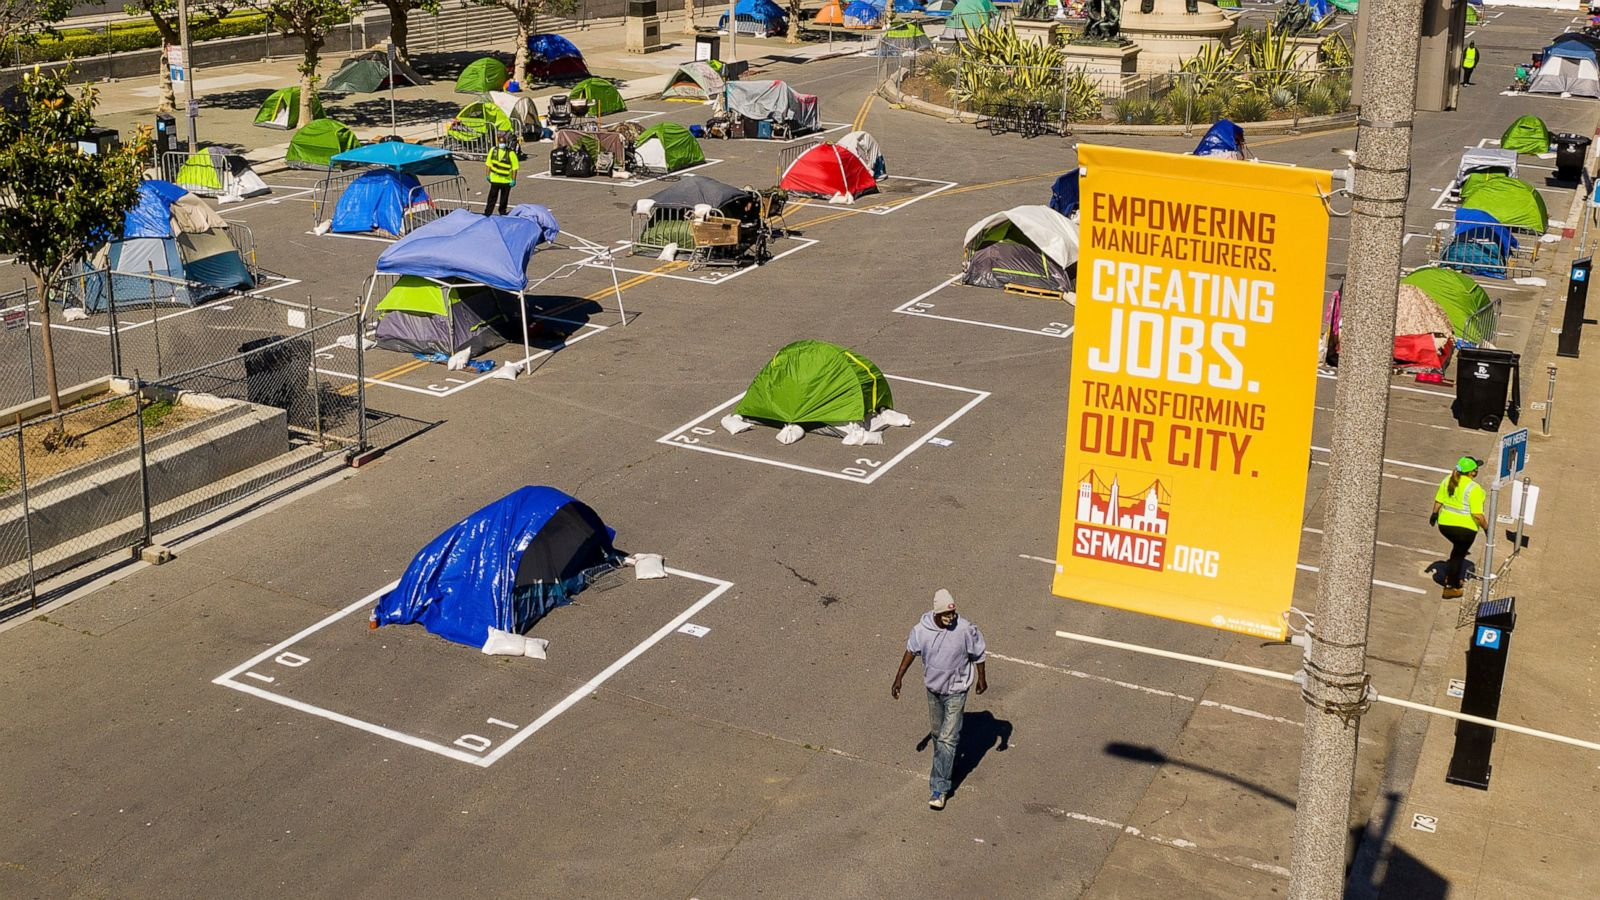 Tents for homeless cost San Francisco taxpayers a whopping ,000 per month each